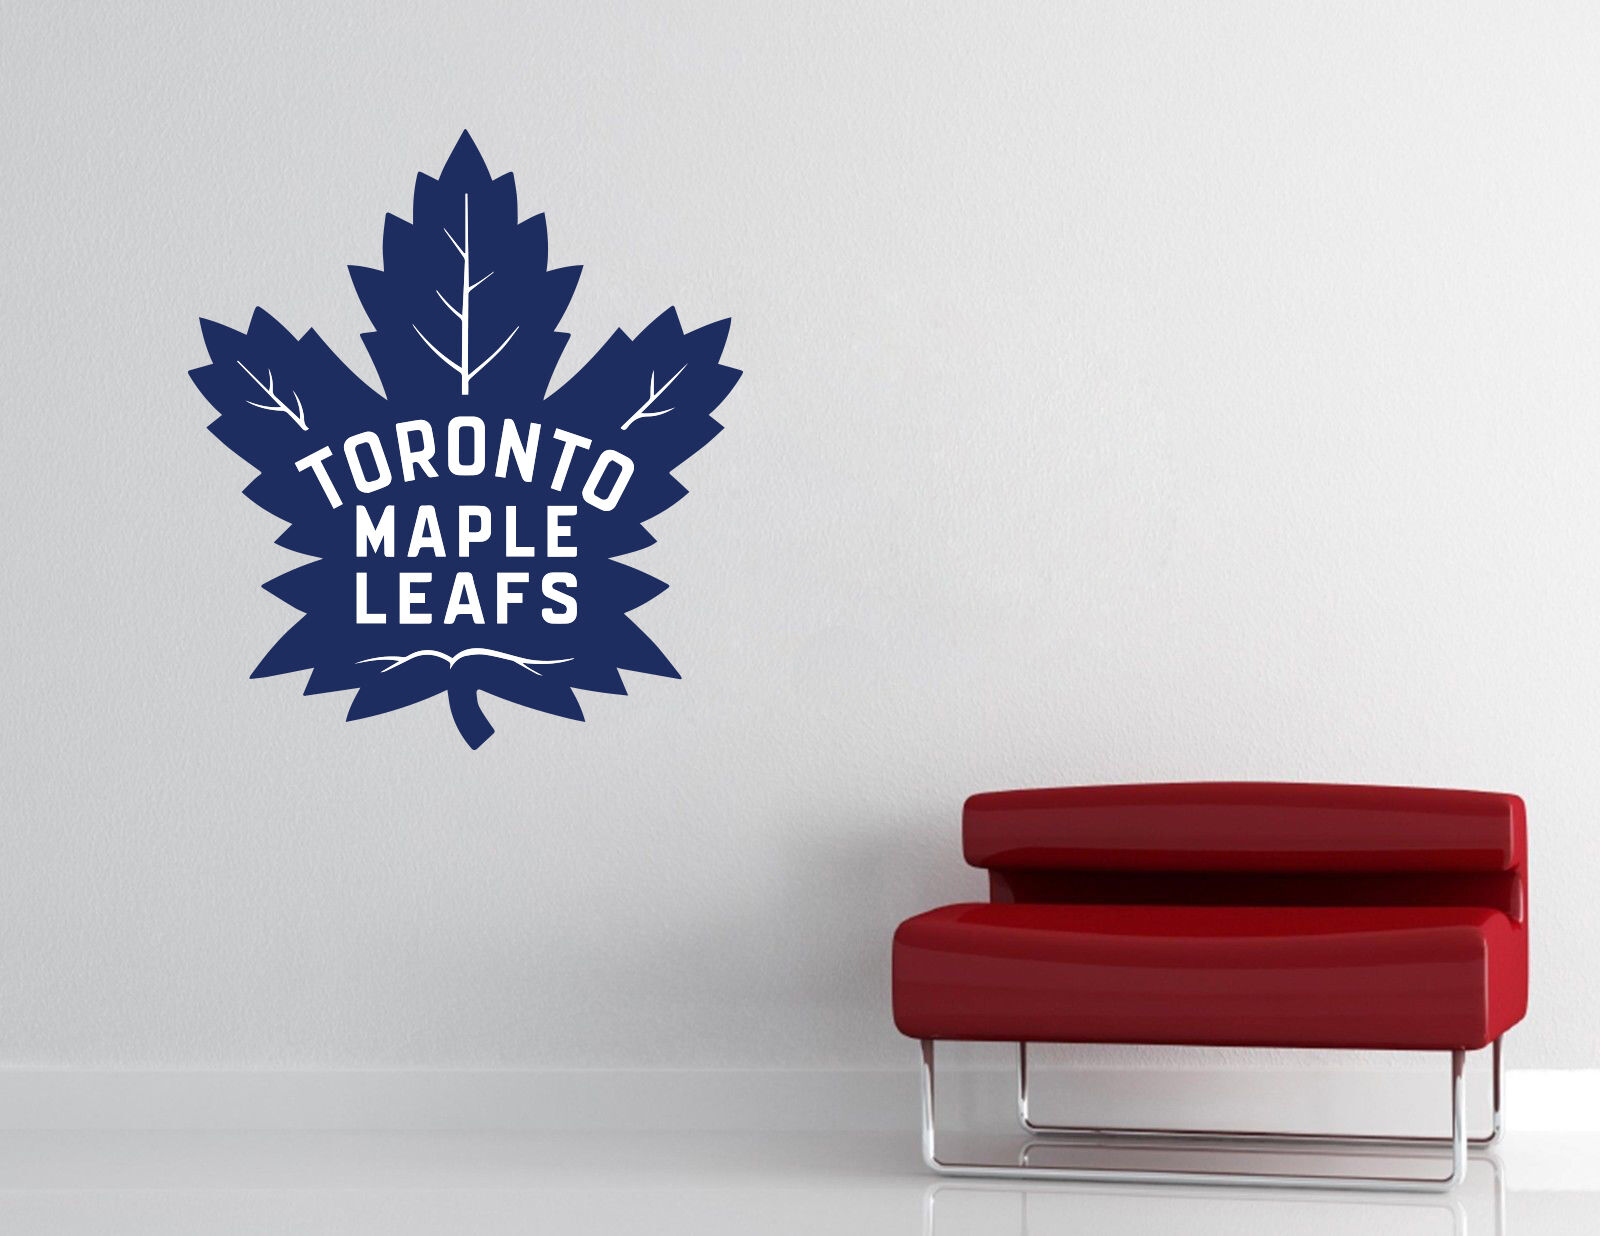 TGoldnto Maple Leafs NHL Wall Decal Vinyl Sticker Decor Hockey EXTRA LARGE L250